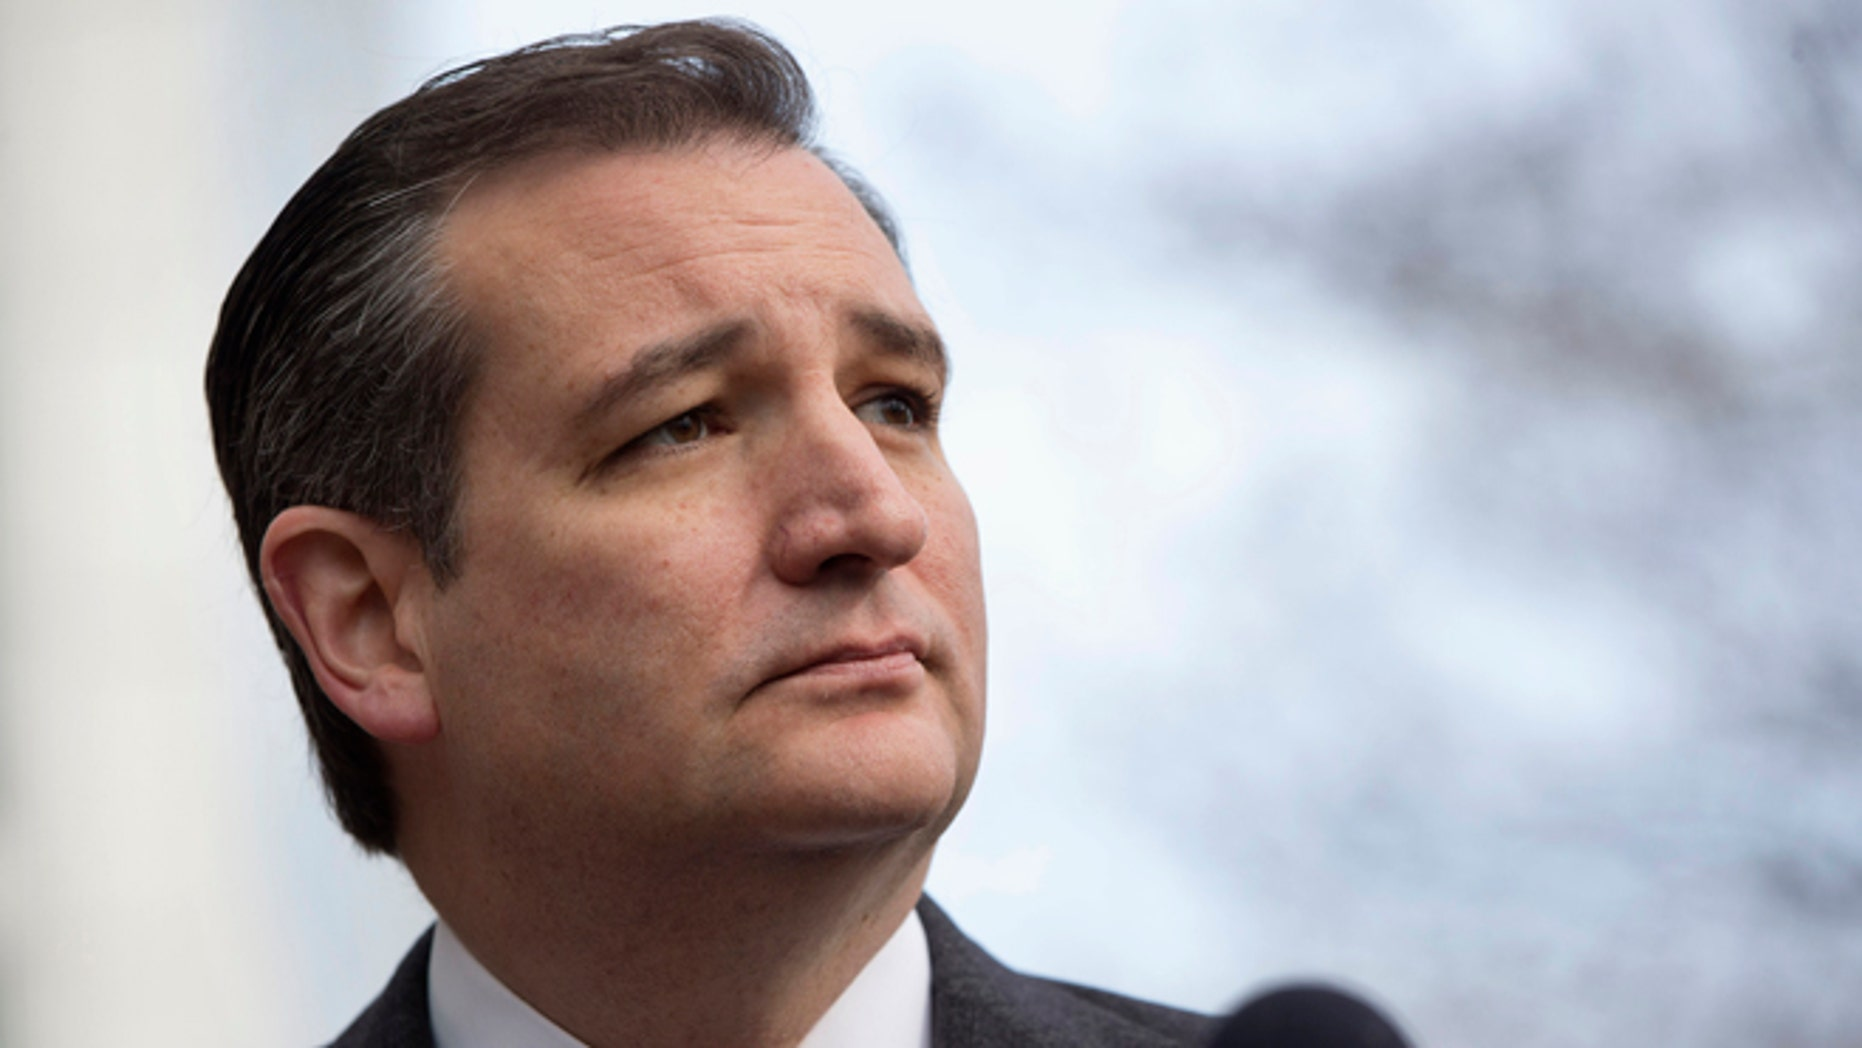 """Republican presidential candidate, Sen. Ted Cruz, R-Texas pauses while speaking to the media about events in Brussels, Tuesday, March 22, 2016, near the Capitol in Washington. Cruz said he would use the """"full force and fury"""" of the U.S. military to defeat the Islamic State group.  (AP Photo/Jacquelyn Martin)"""